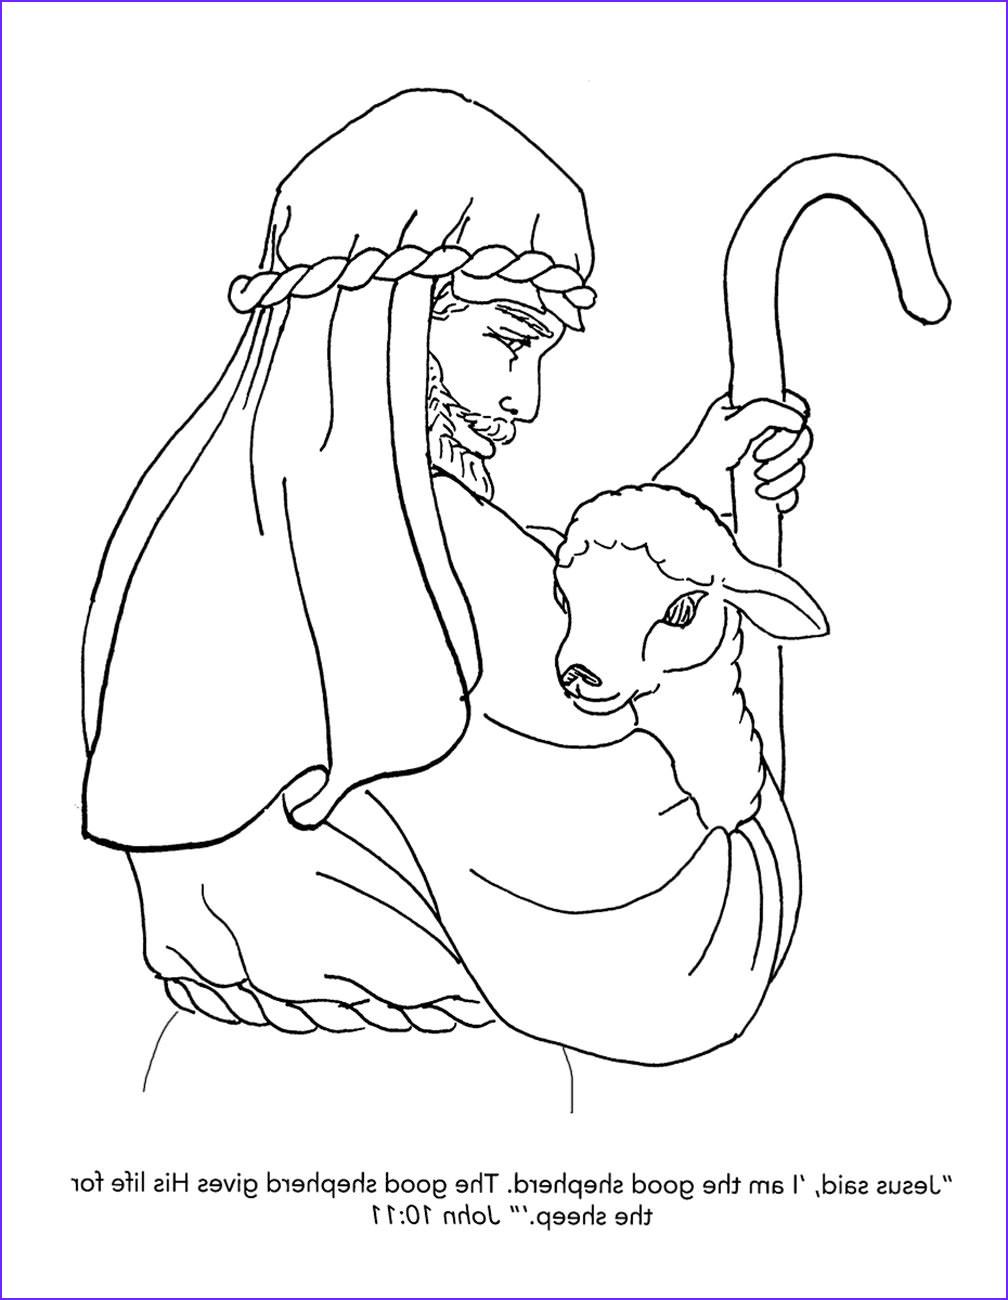 Jesus the Good Shepherd Coloring Page Unique Image Free Christian Coloring Pages for Kids Children and